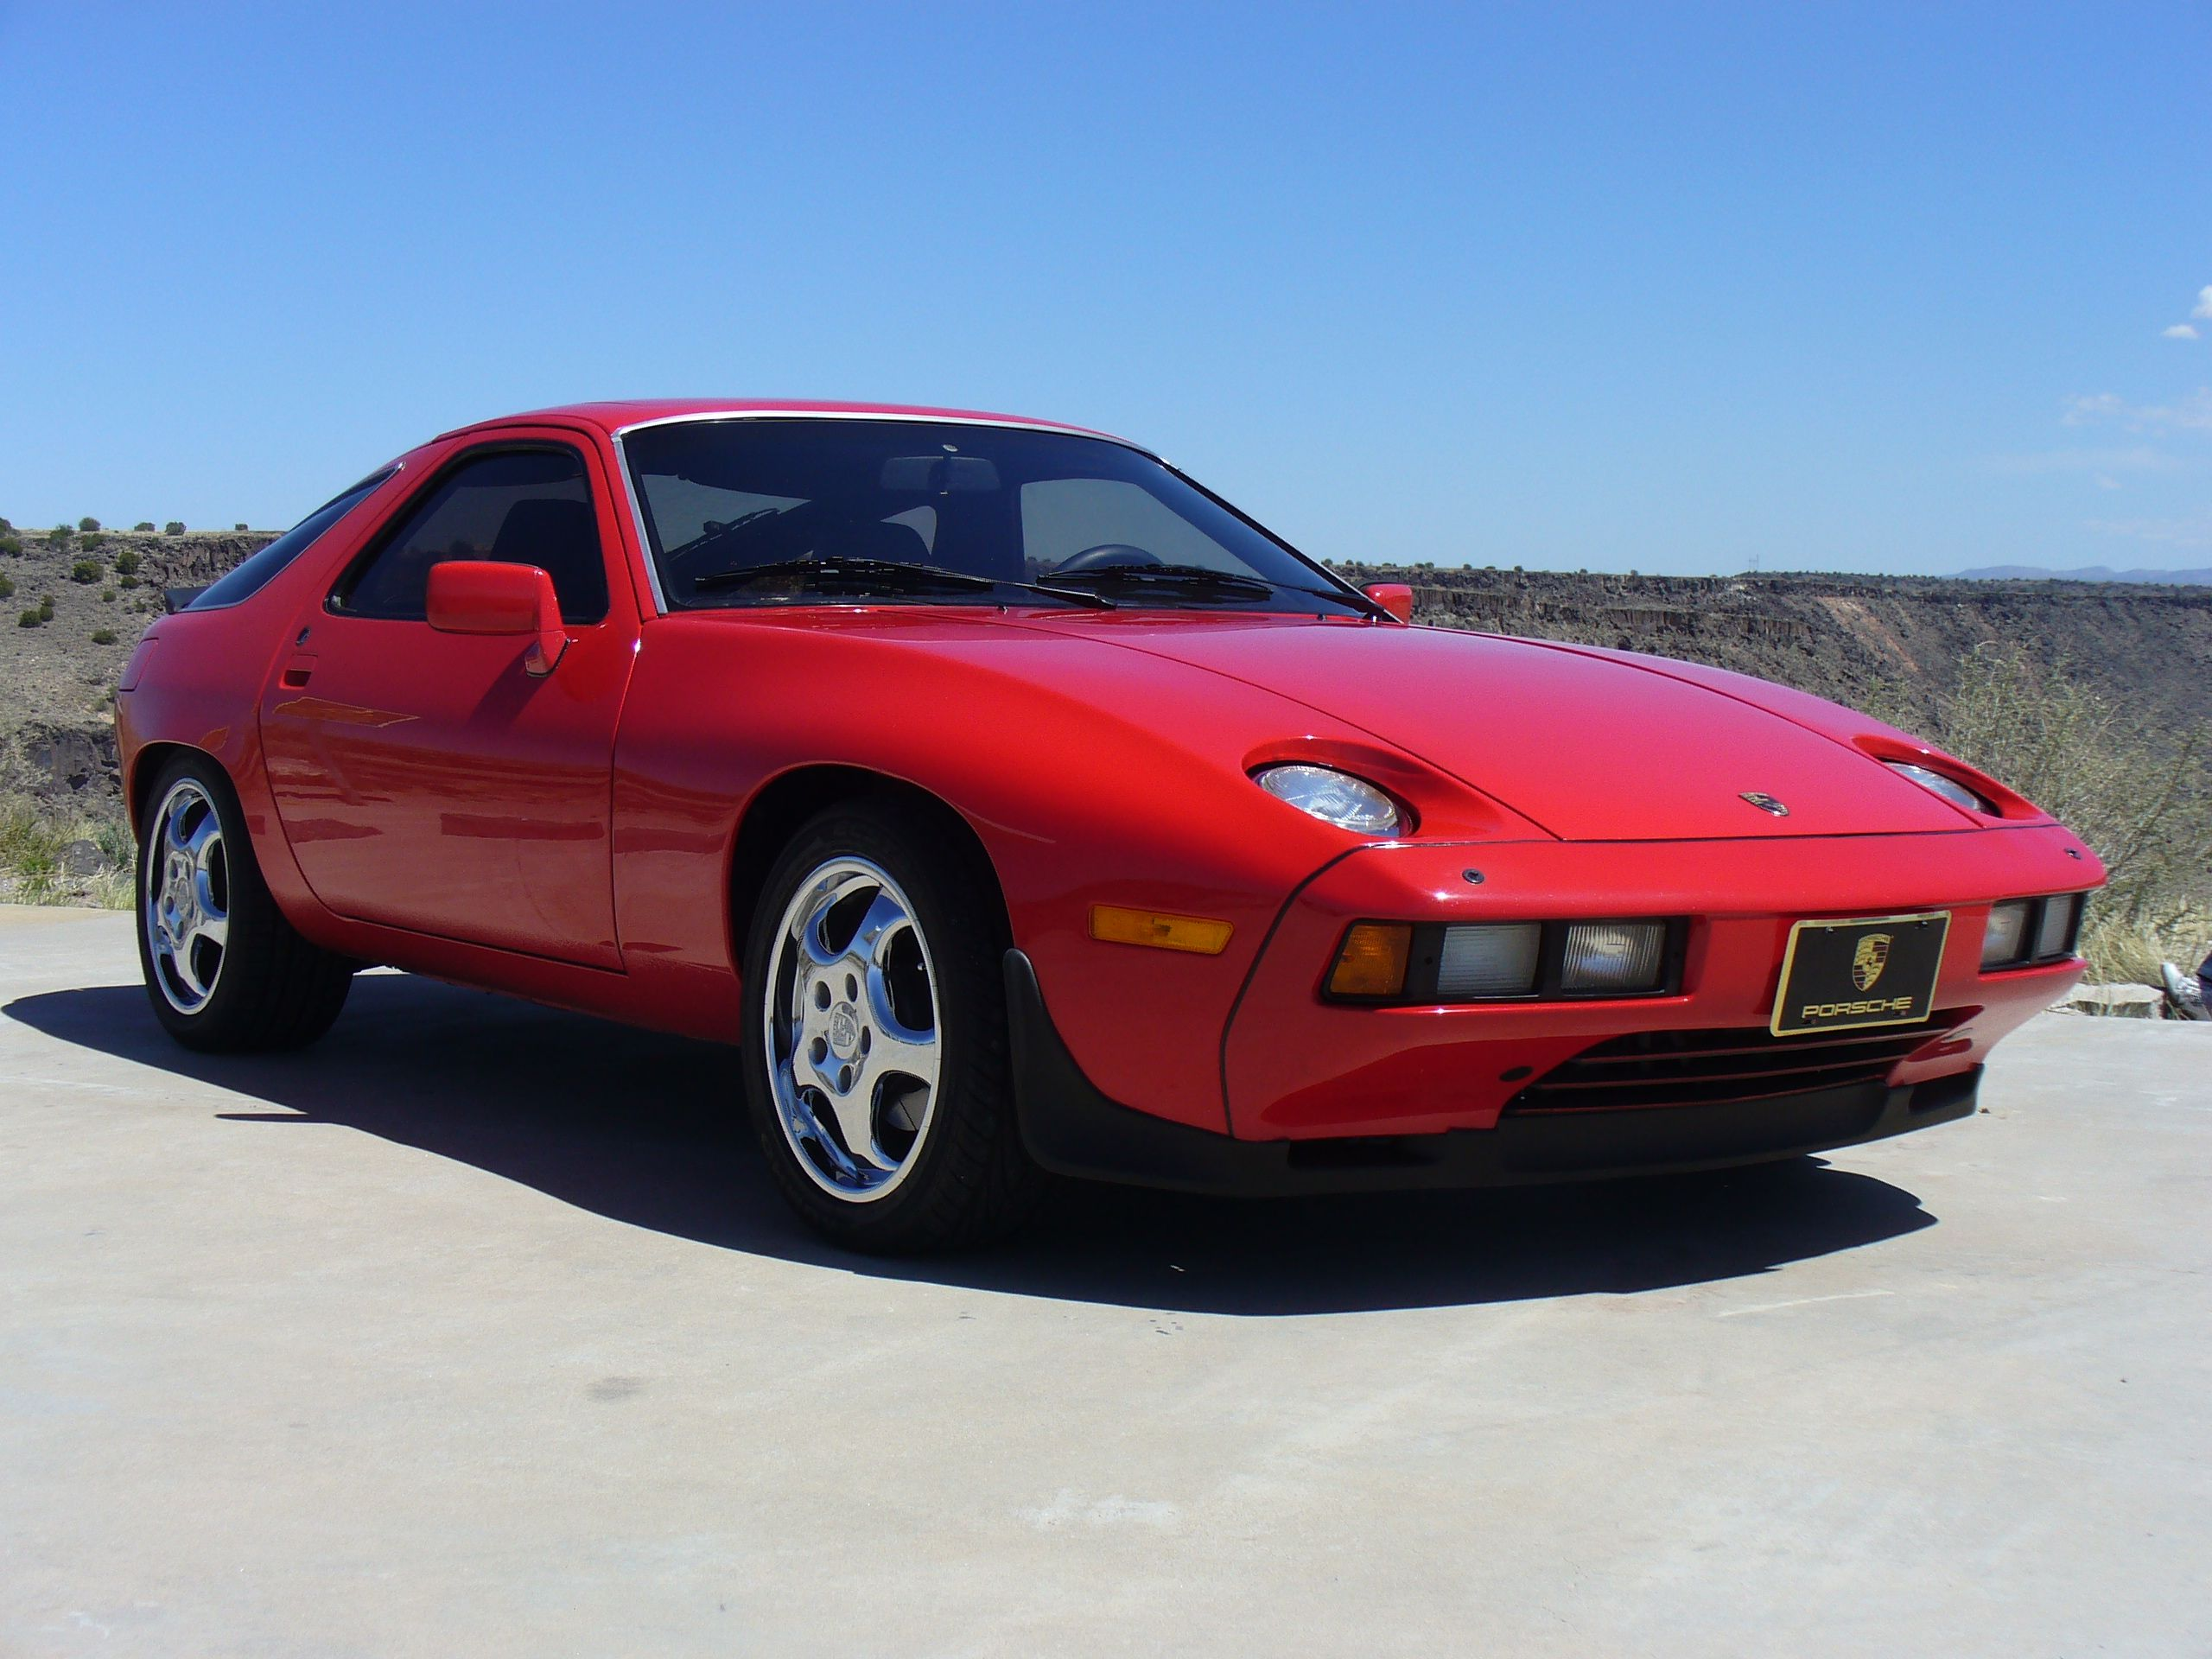 To Someday Buy And Faithfully Restore The Porsche 928s Porsche 928 Porsche Porsche Cars